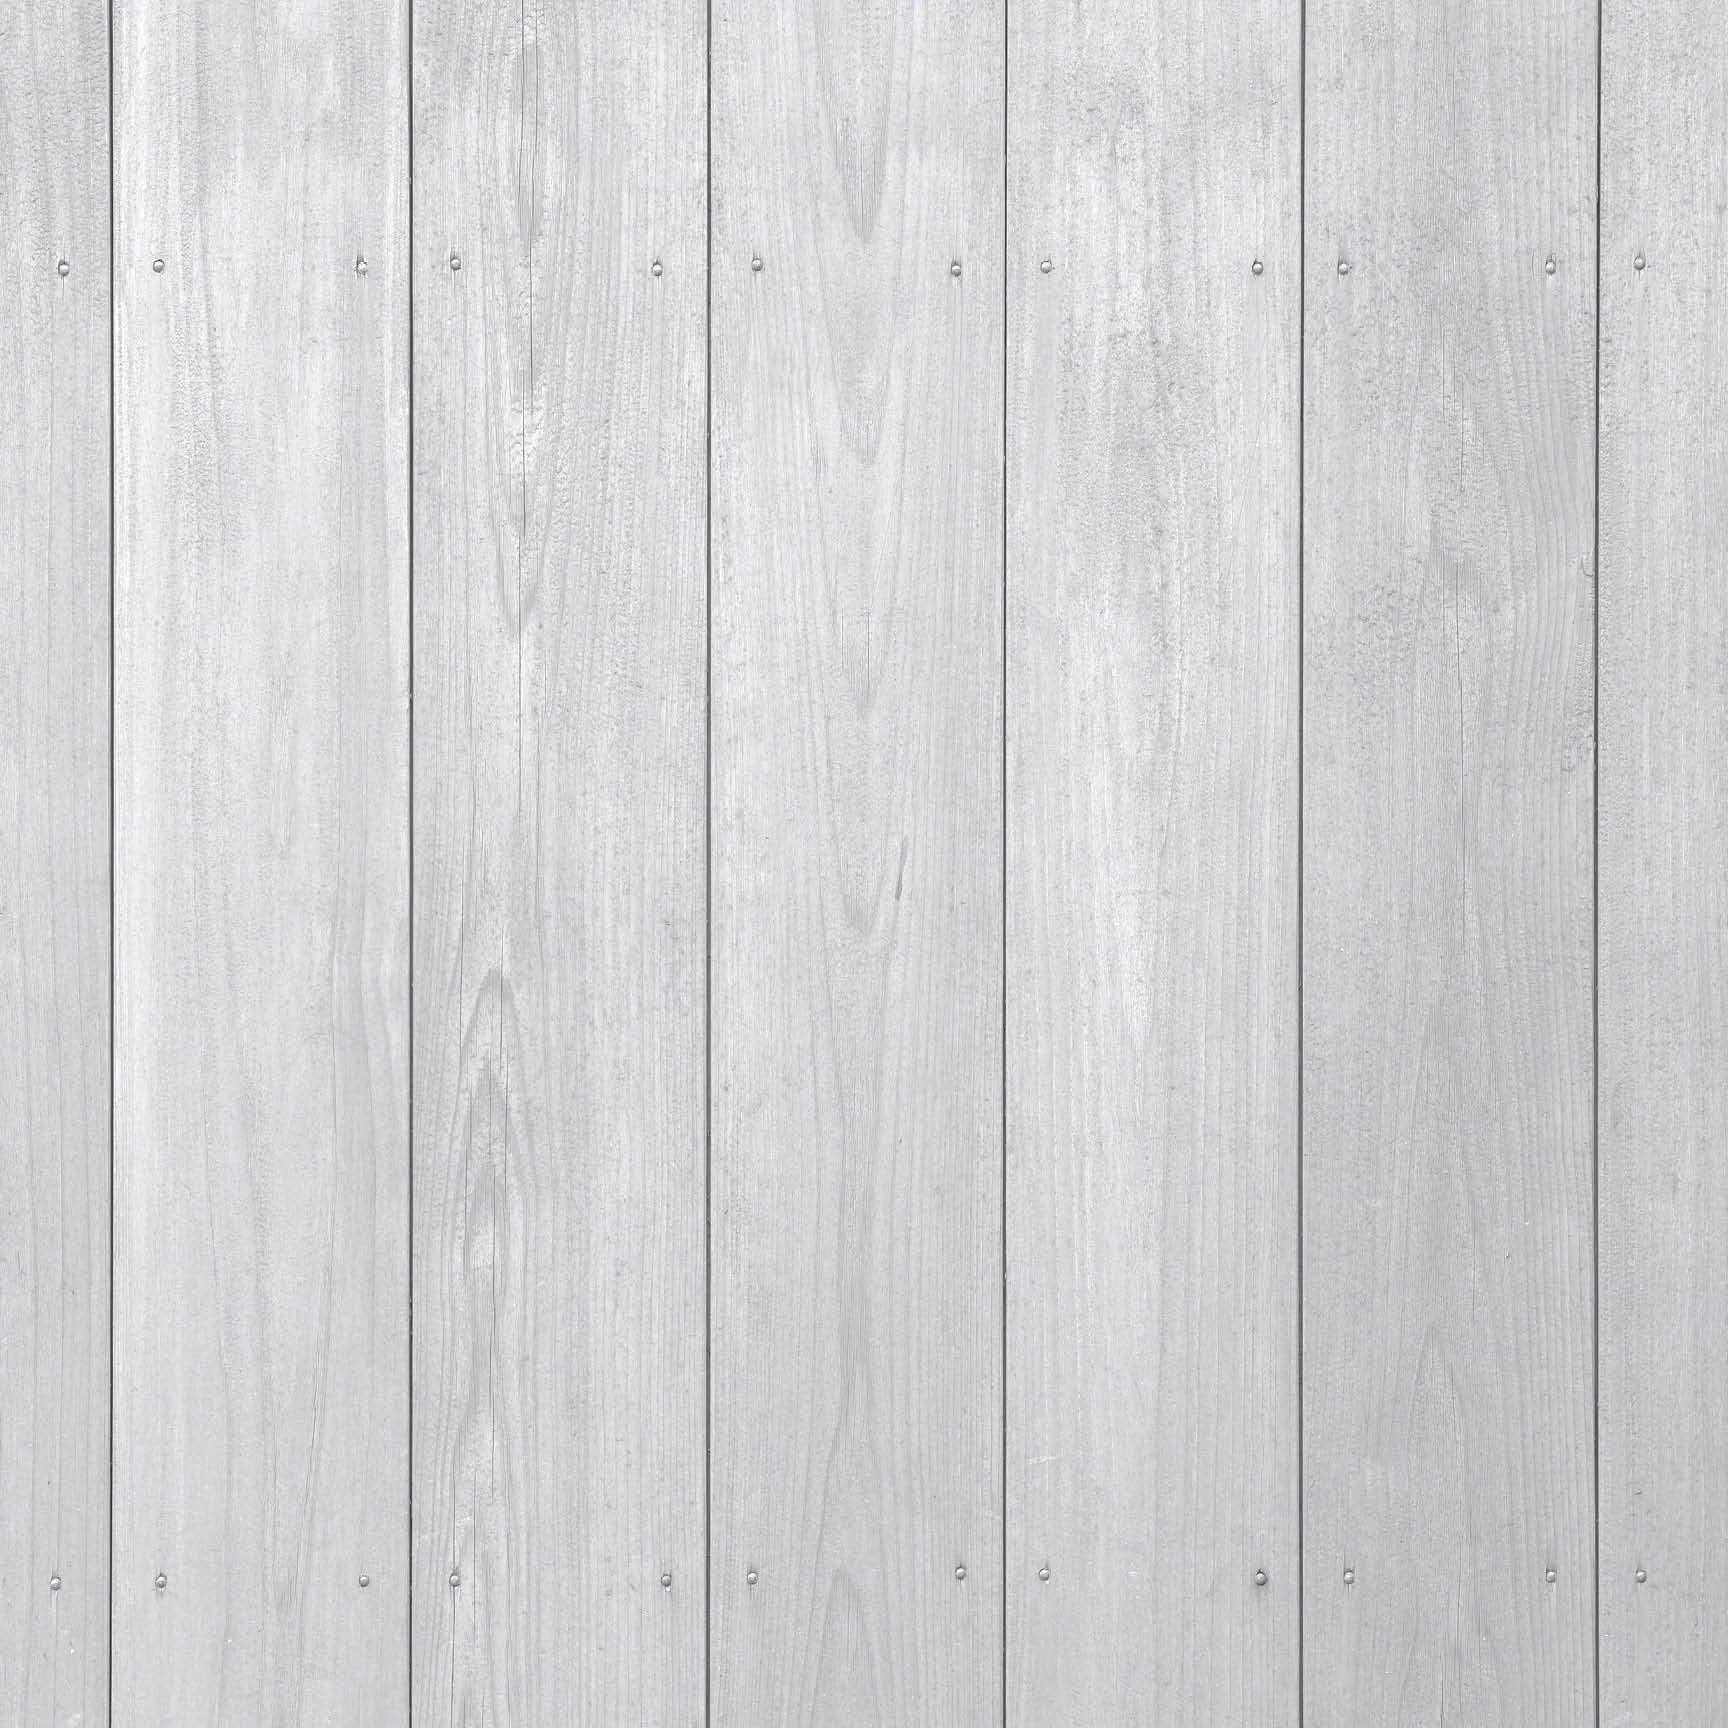 Gray Wood Photography Backdrop